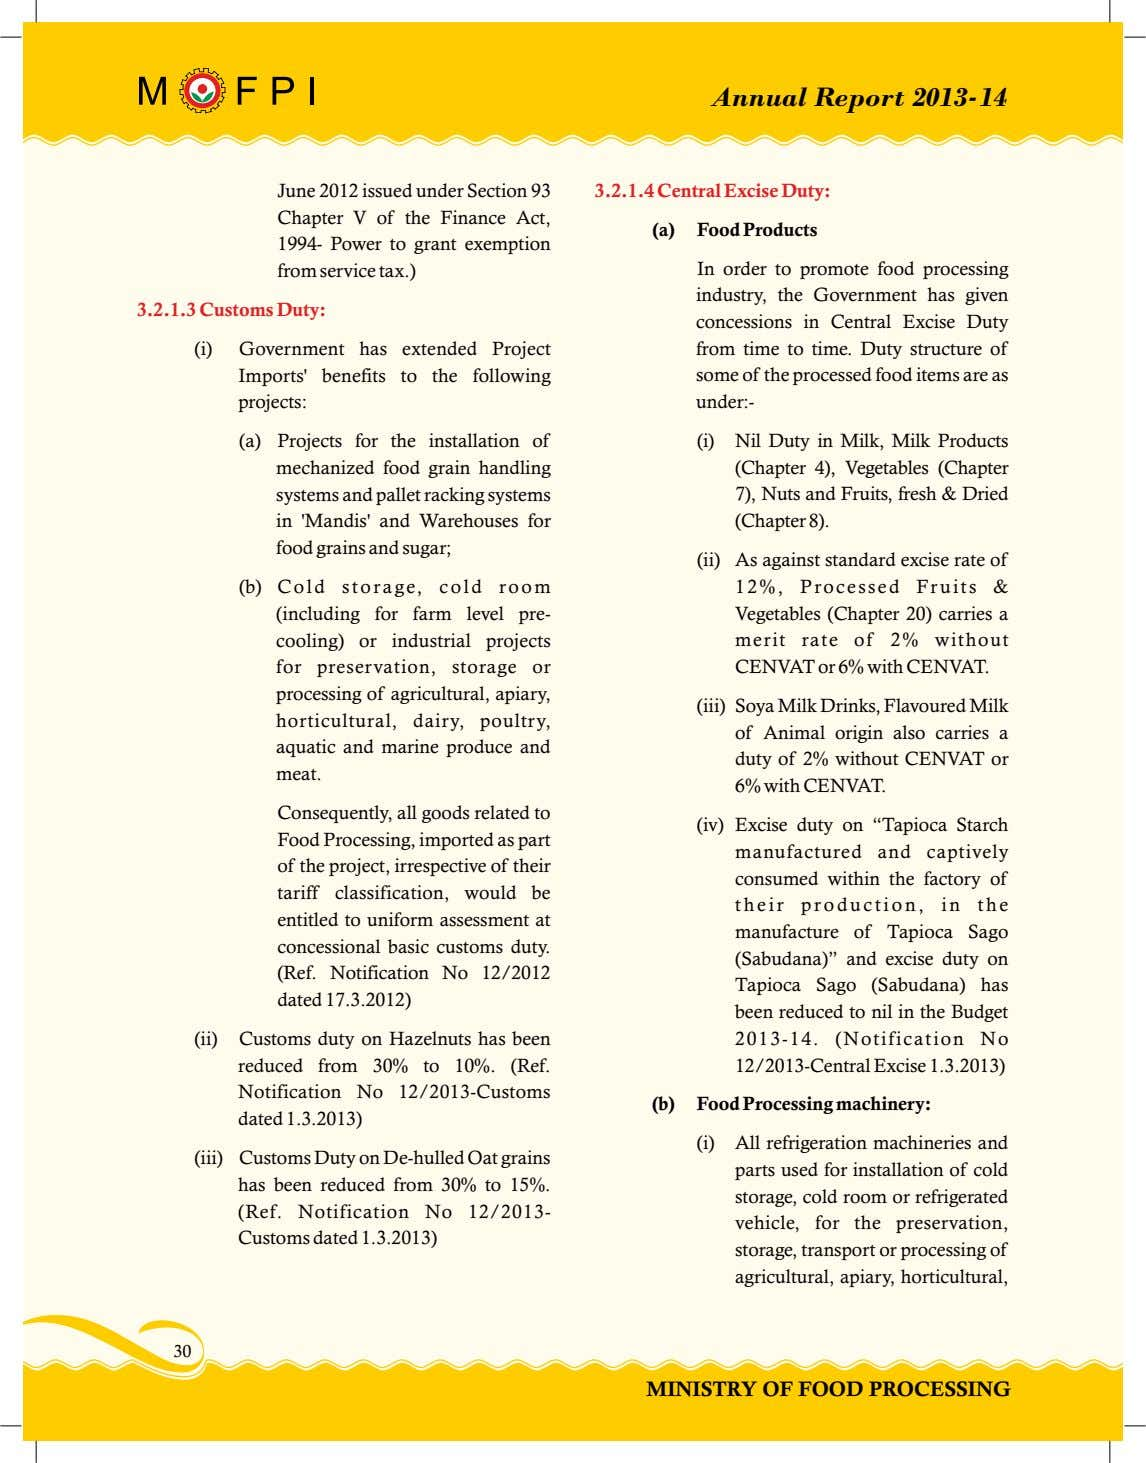 Annual Report 2013-14 June 2012 issued under Section 93 3.2.1.4 Central Excise Duty: Chapter V